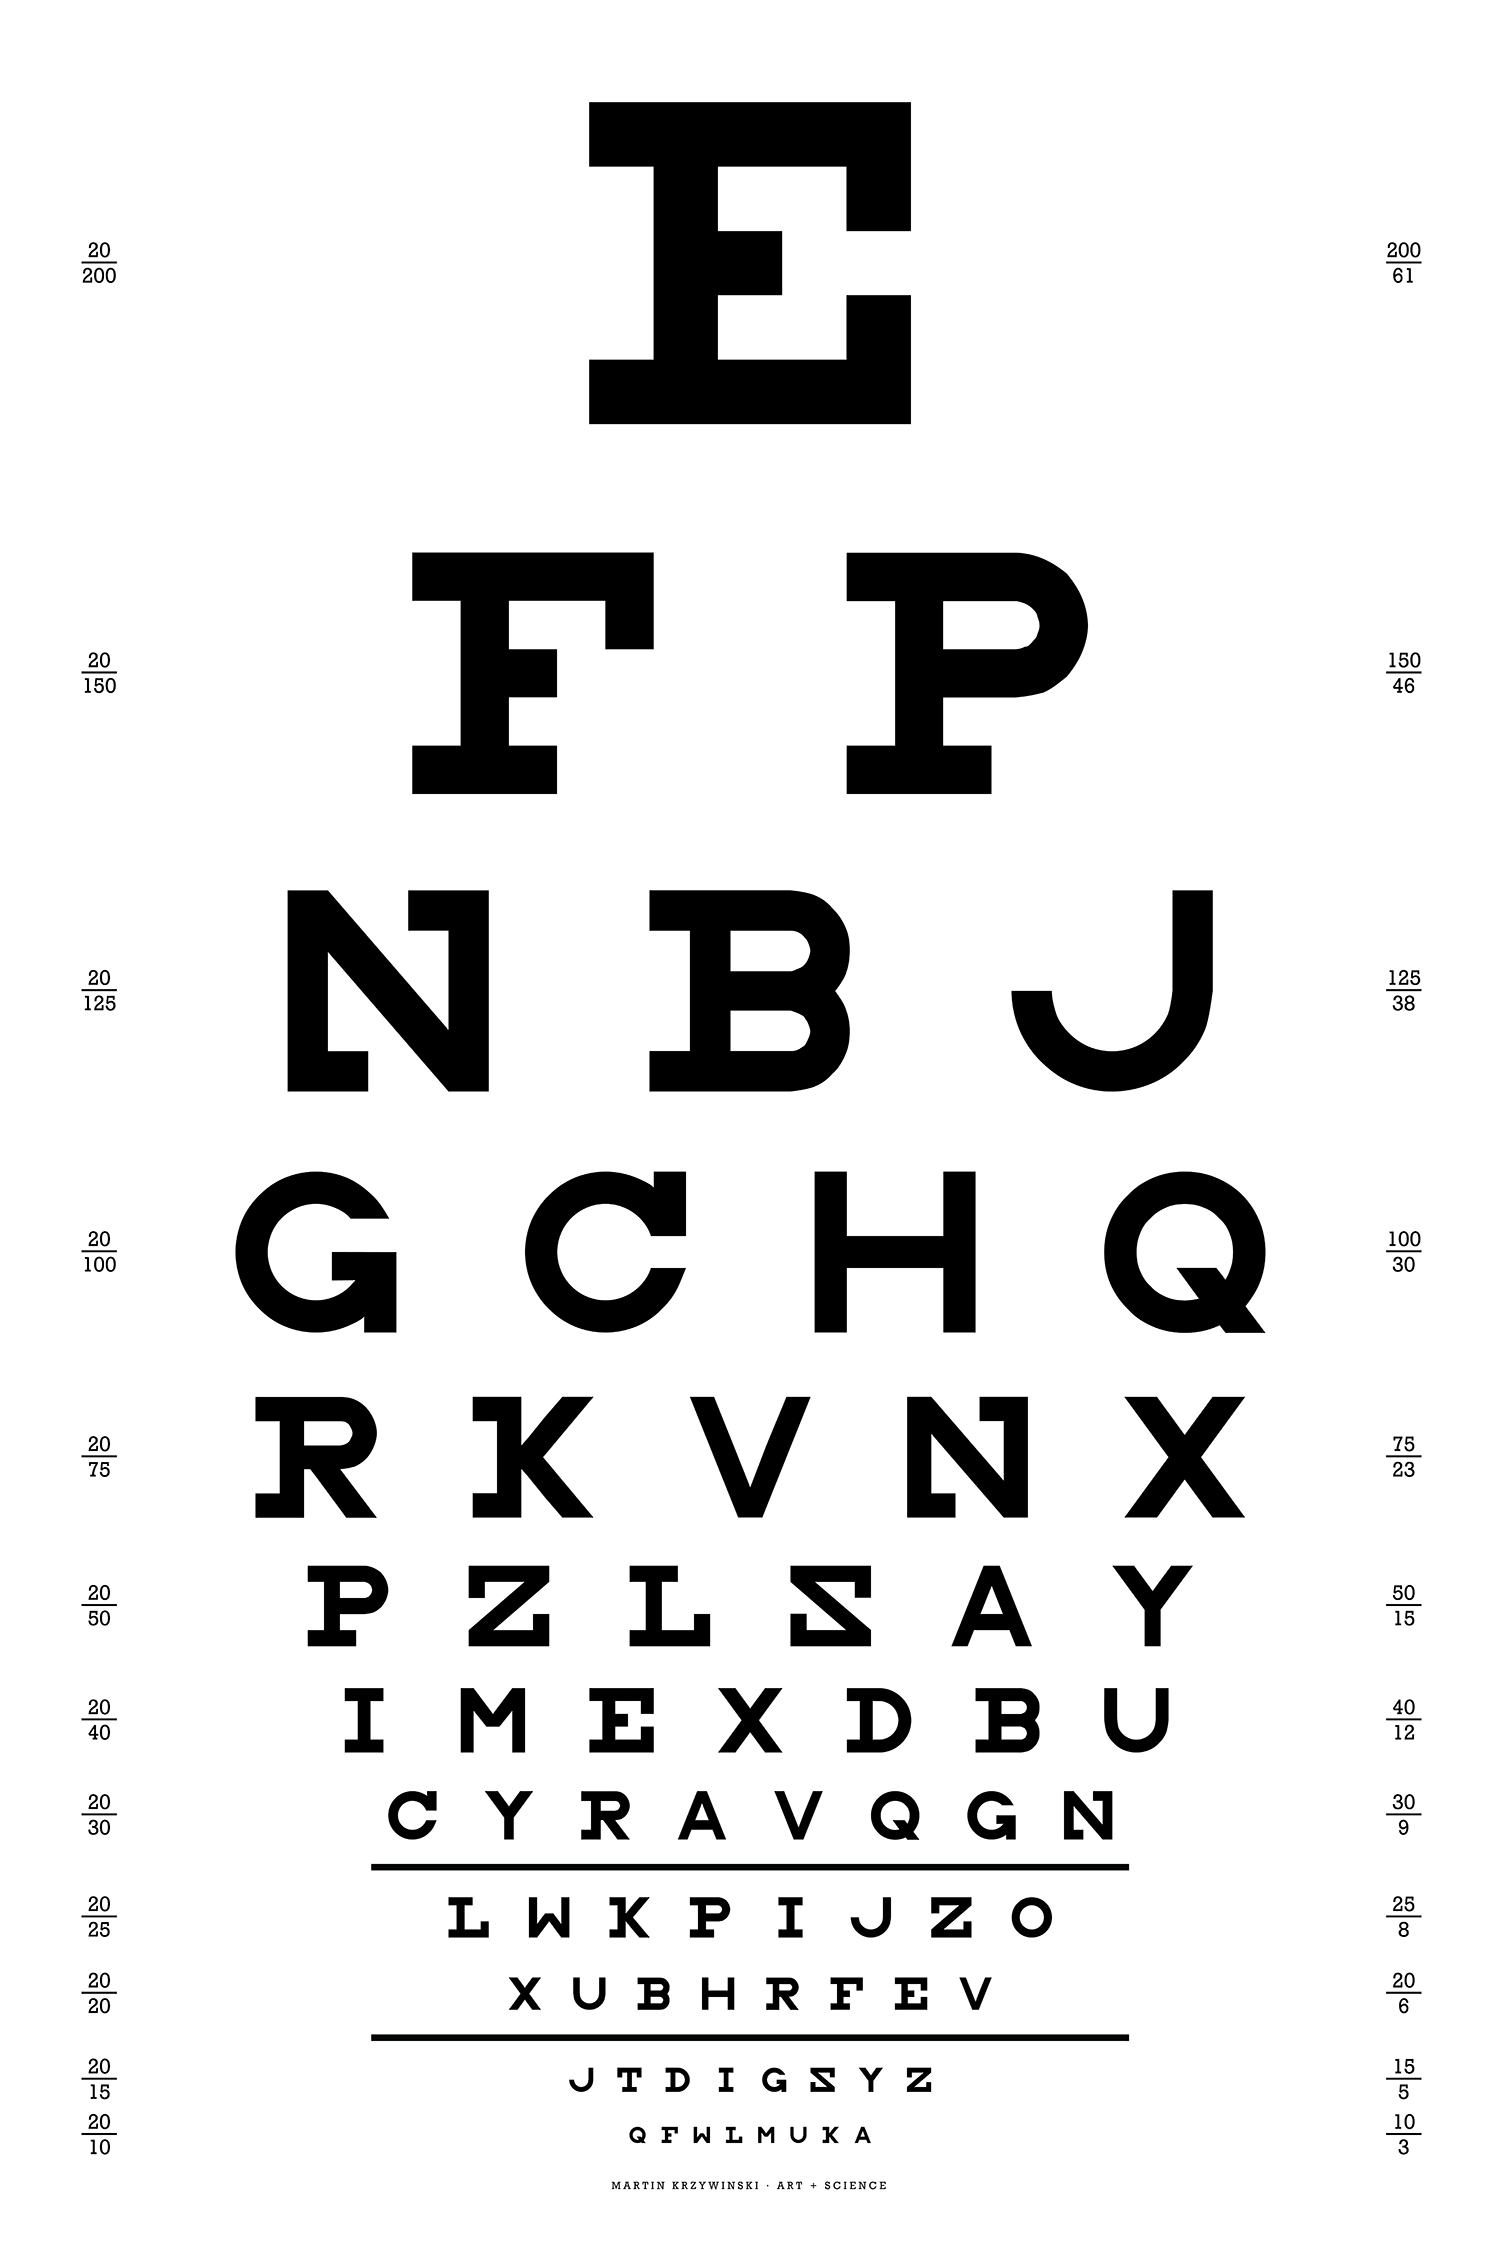 Typographical posters of how the world works in the style of Snellen eye charts  / Martin Krzywinski @MKrzywinski mkweb.bcgsc.ca